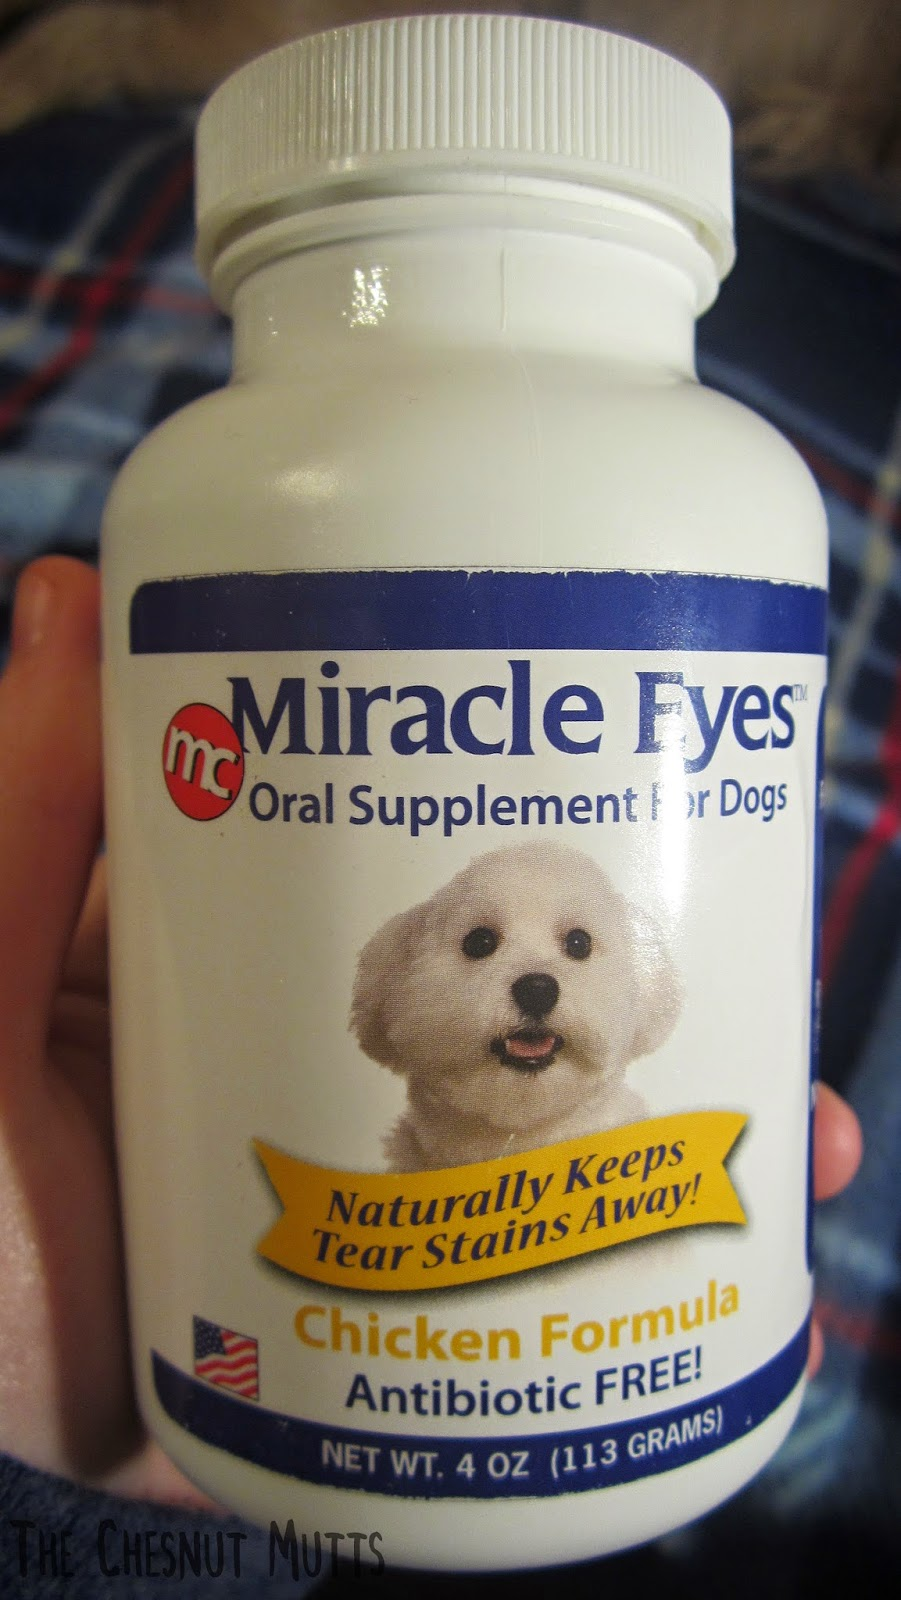 Miracle Eyes oral Supplement for dogs Chicken formula antibiotic free